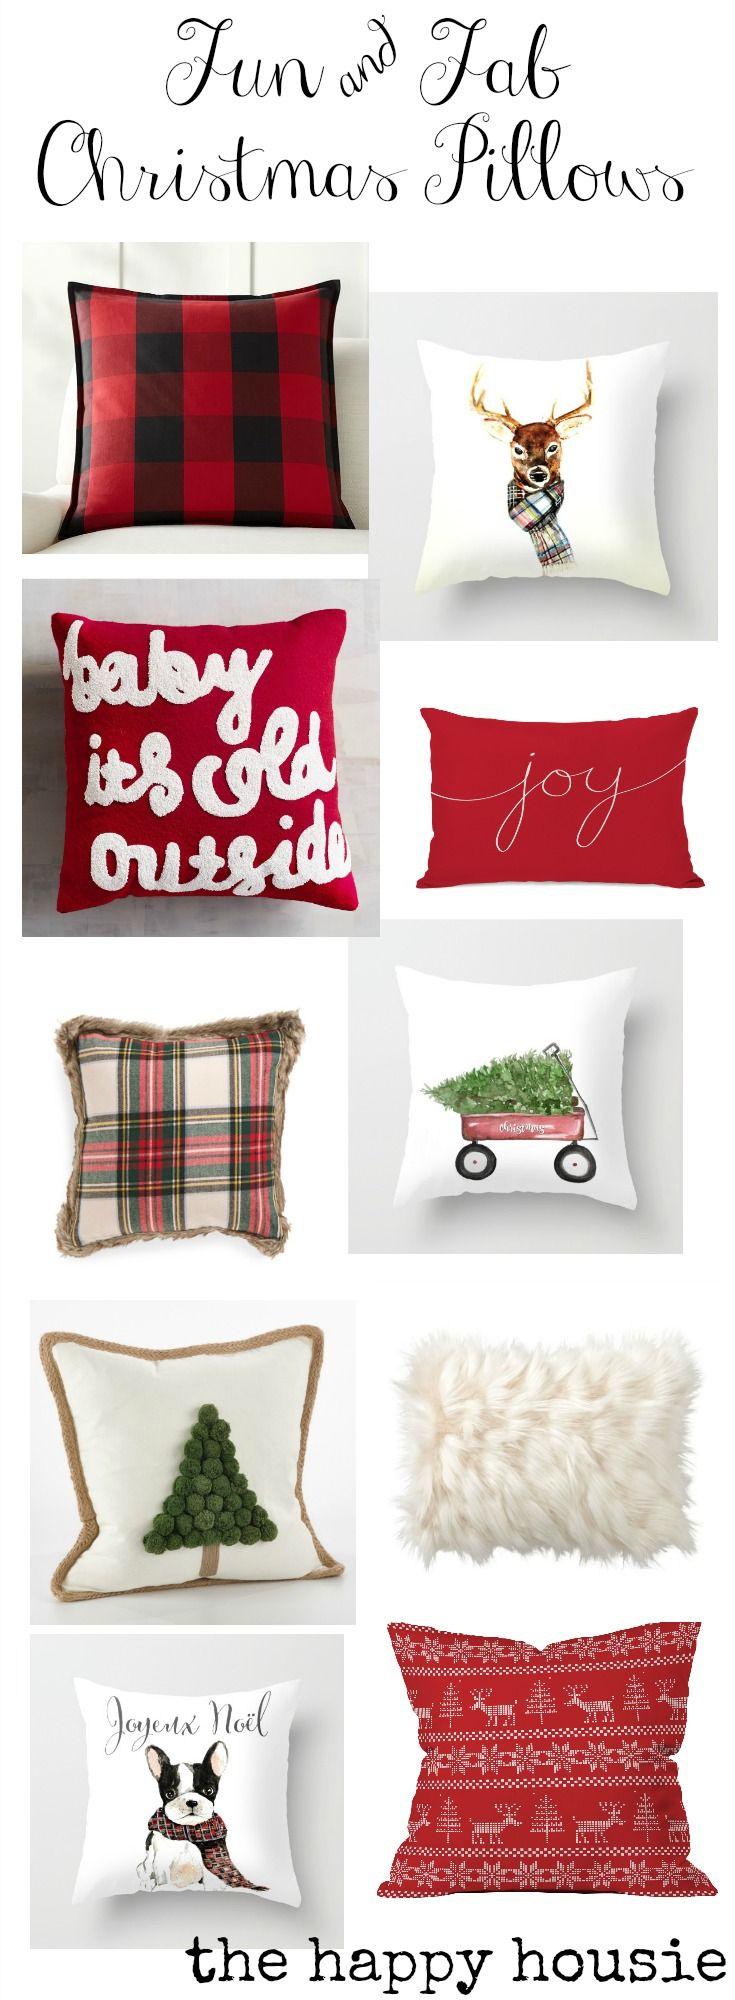 super-fun-and-fab-christmas-pillows-with-plaid-buffalo-check-christmas-typography-fur-and-cute-designs-by-craftberry-bush